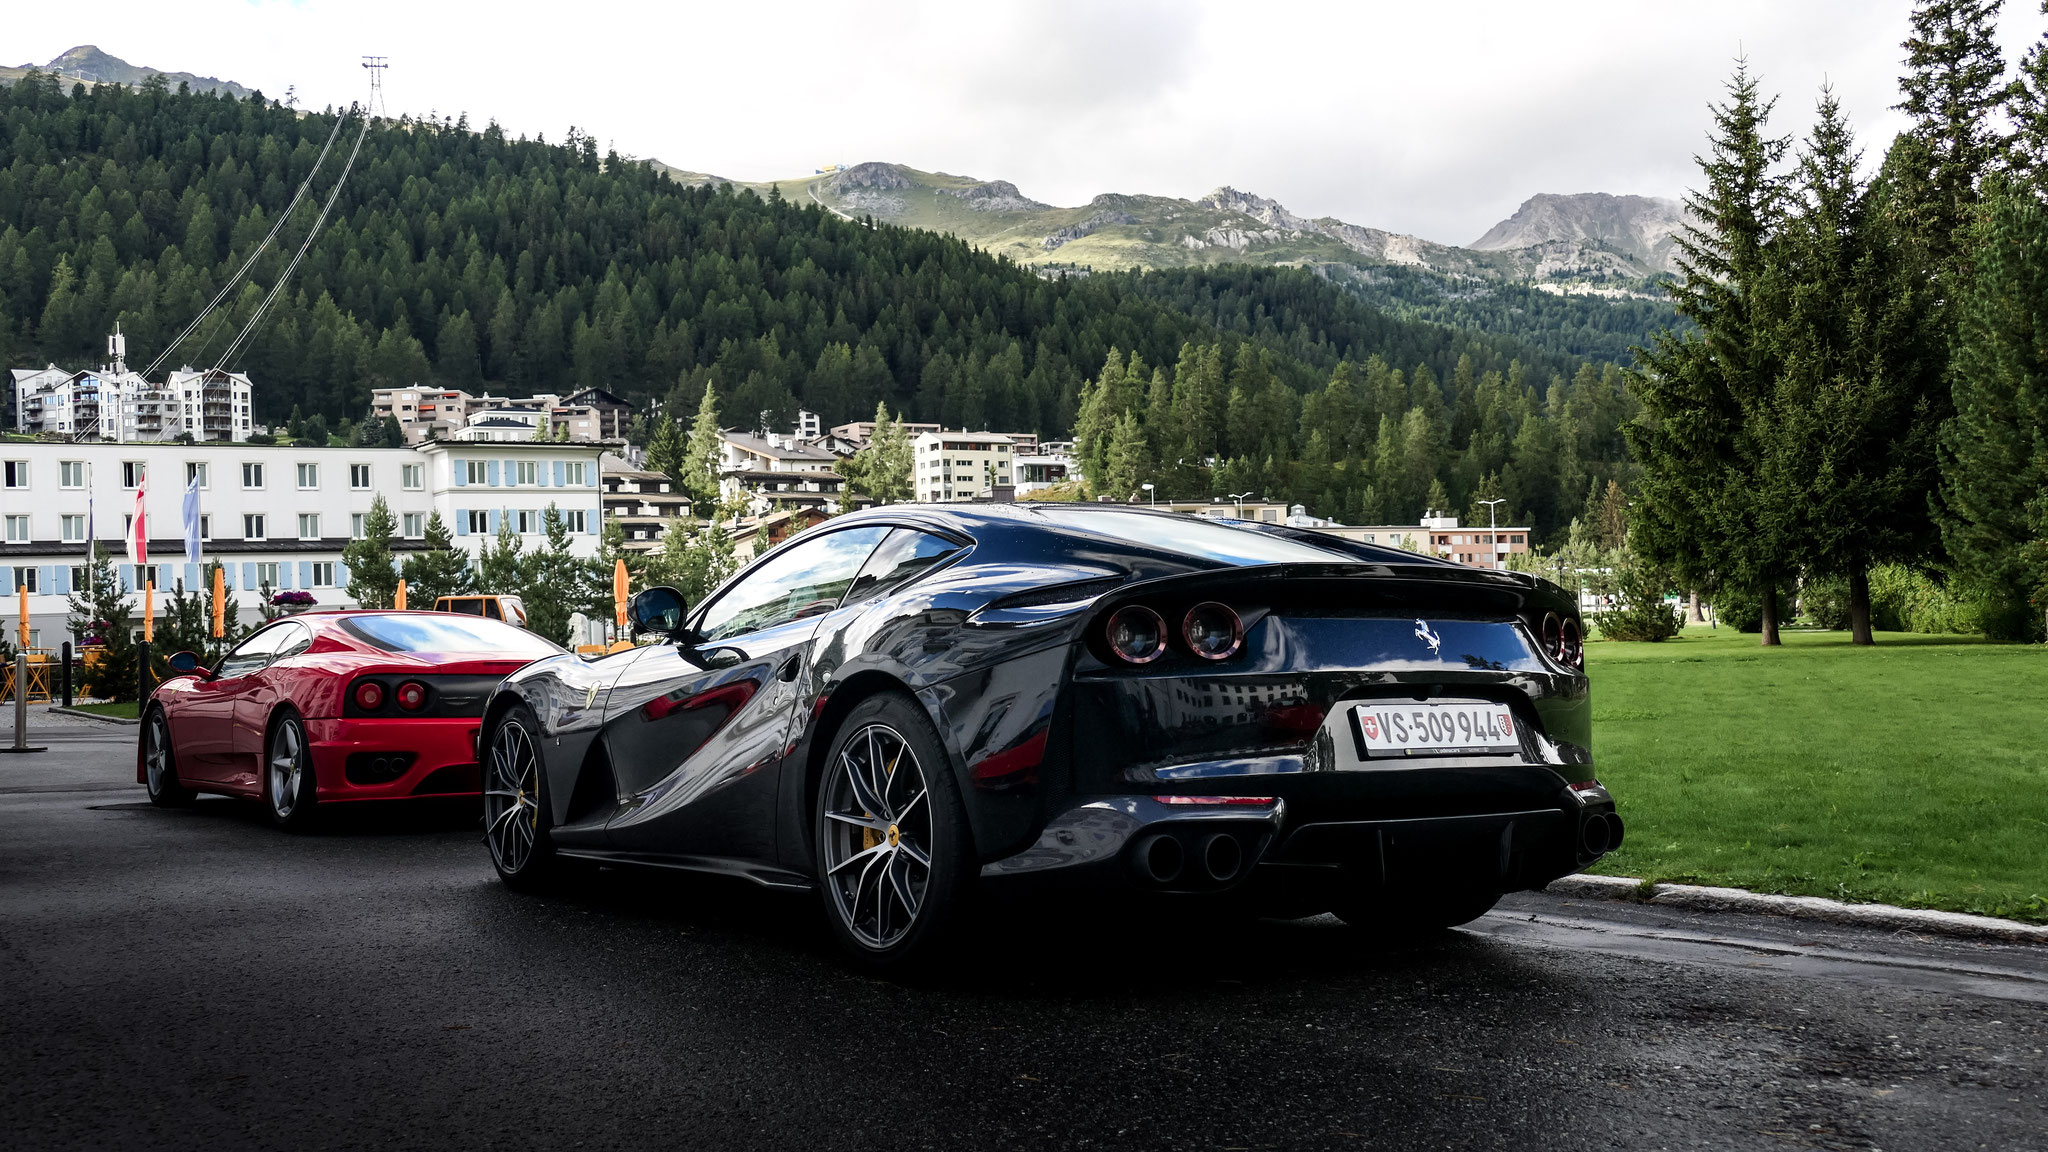 Ferrari 812 Superfast - VS-509944 (CH)